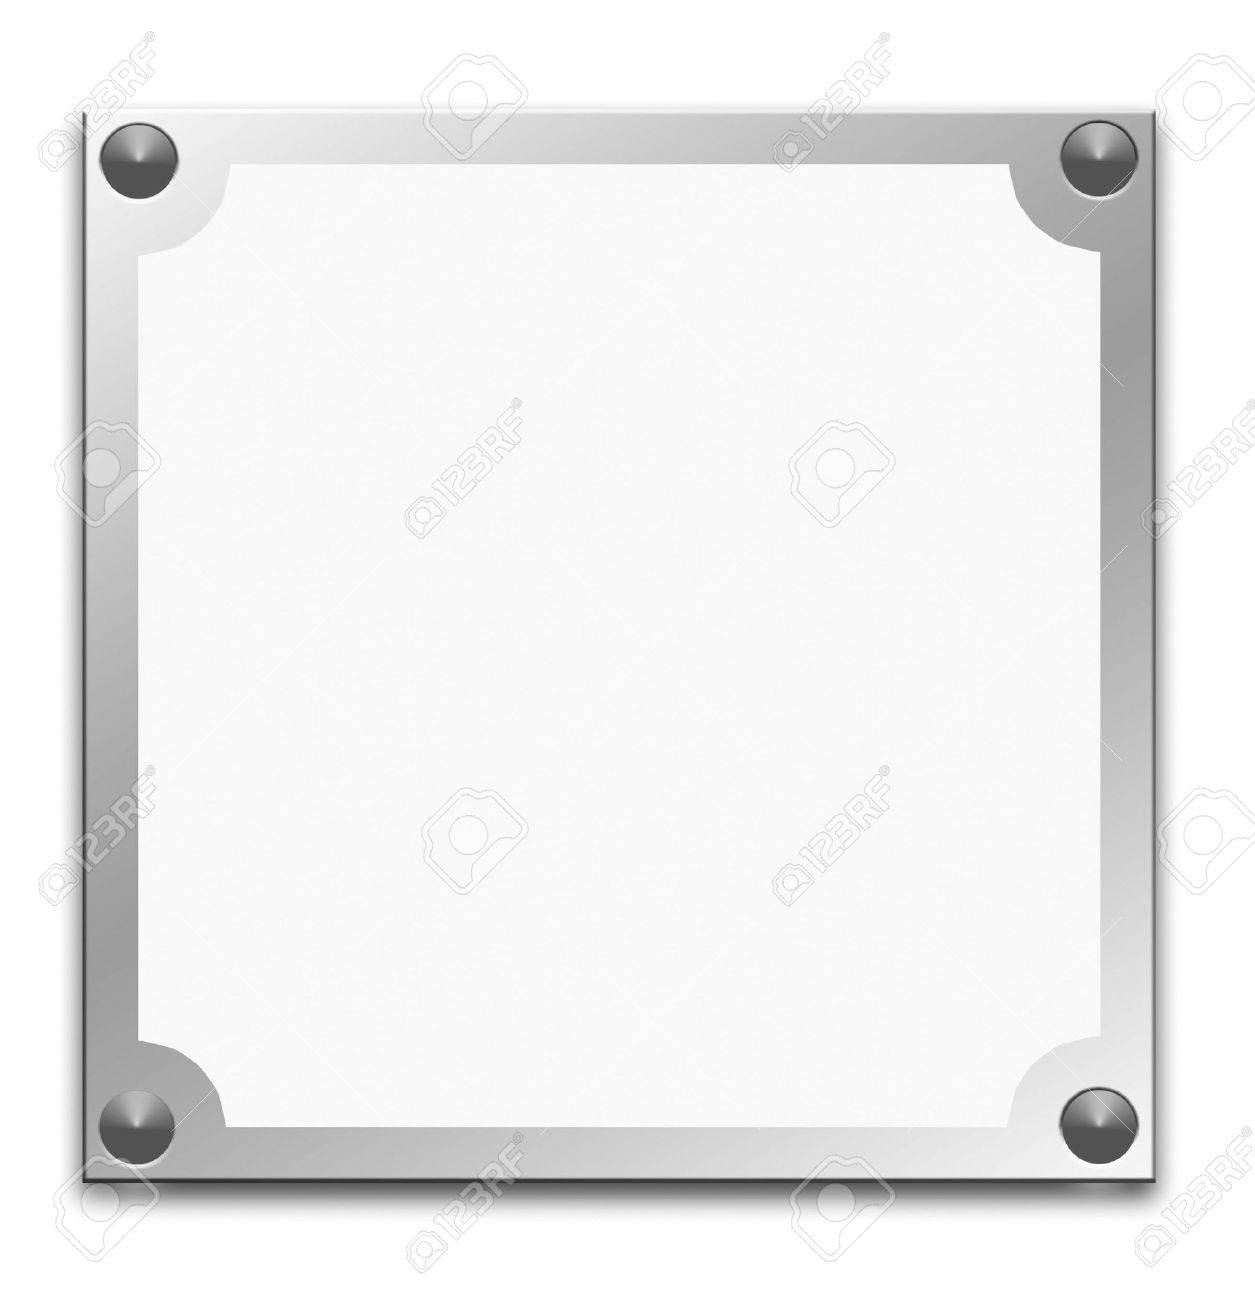 Metallic border frame on white background Stock Photo - 3380383